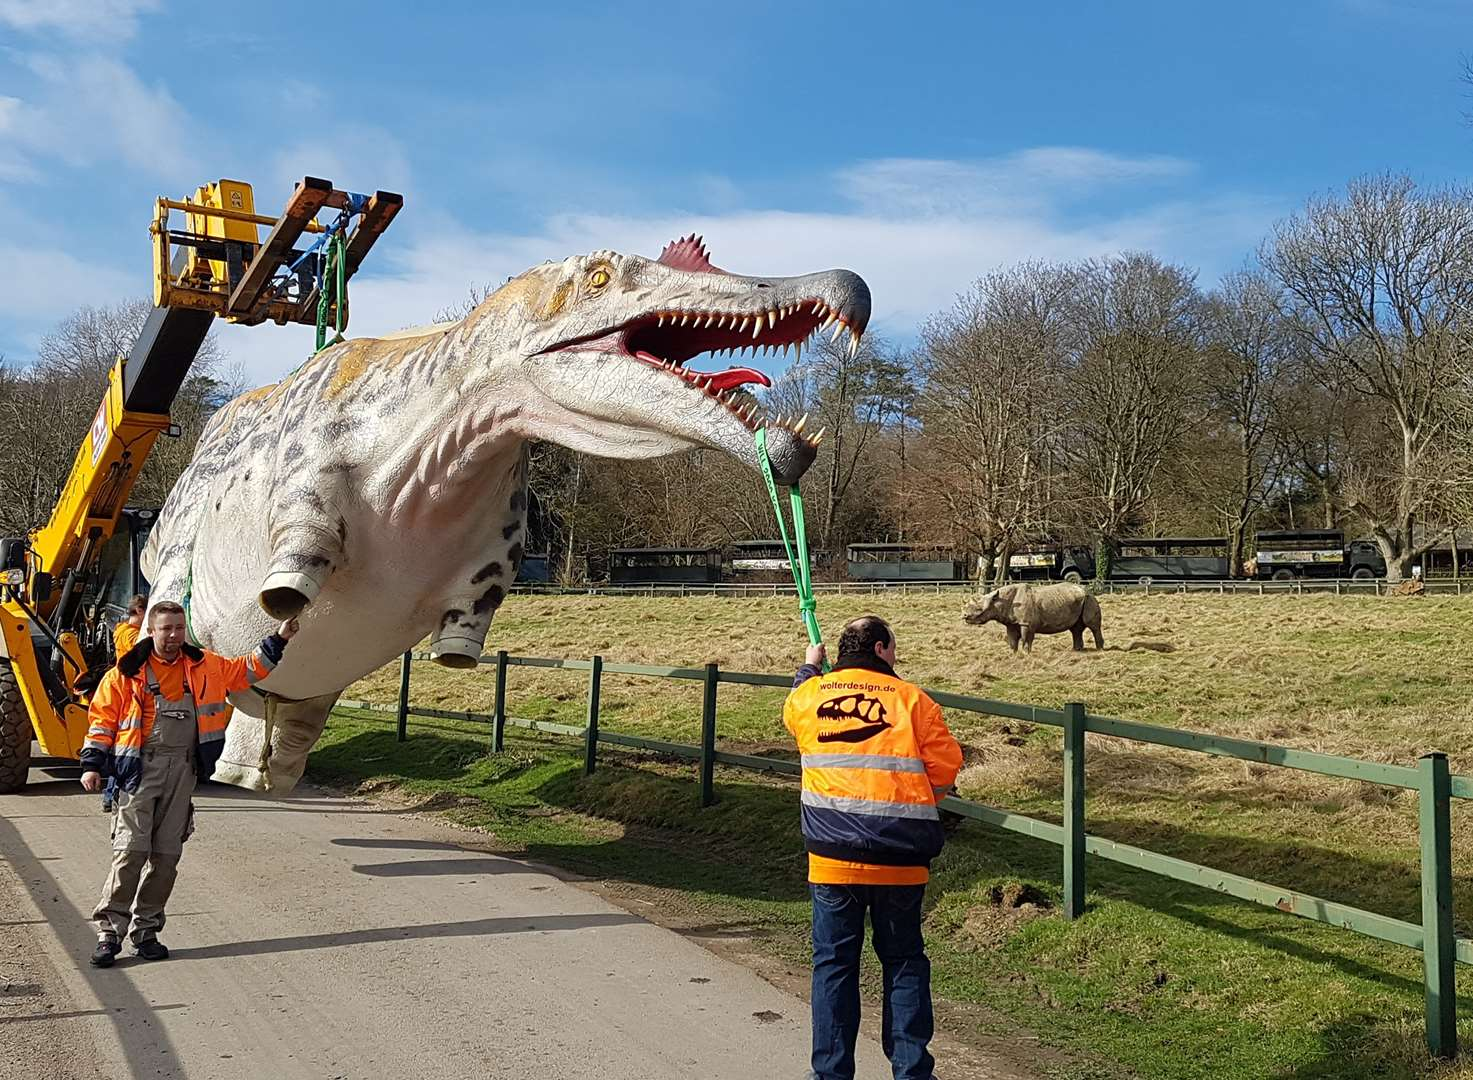 Dinosaur delivered to reserve by crane